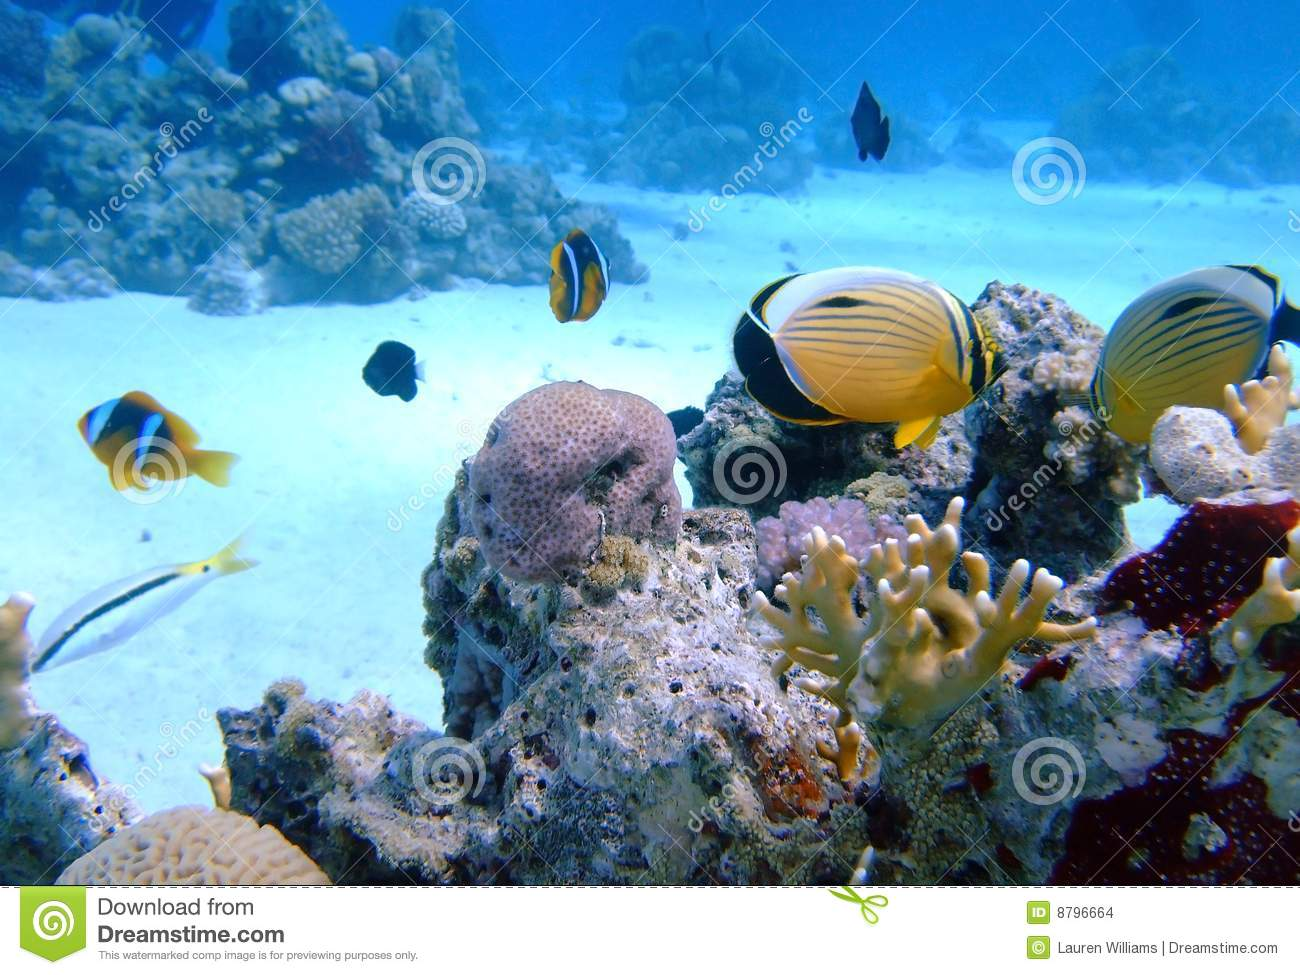 Oval butterflyfish - photo#15